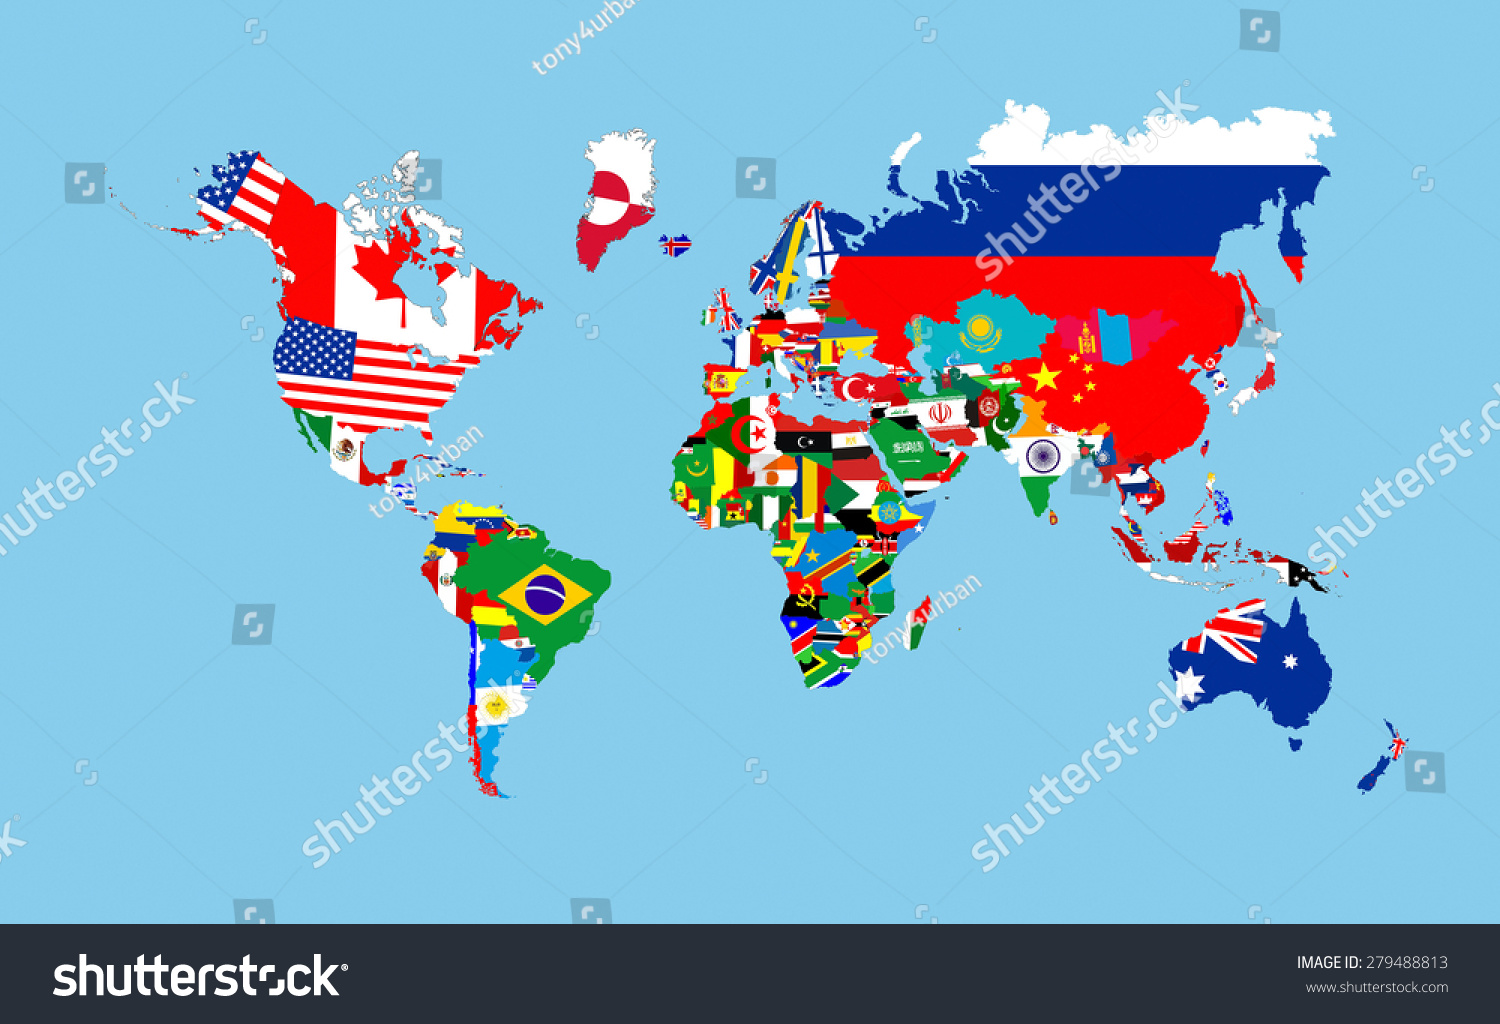 World Countries Flags Map Symbols Complete Stock Illustration